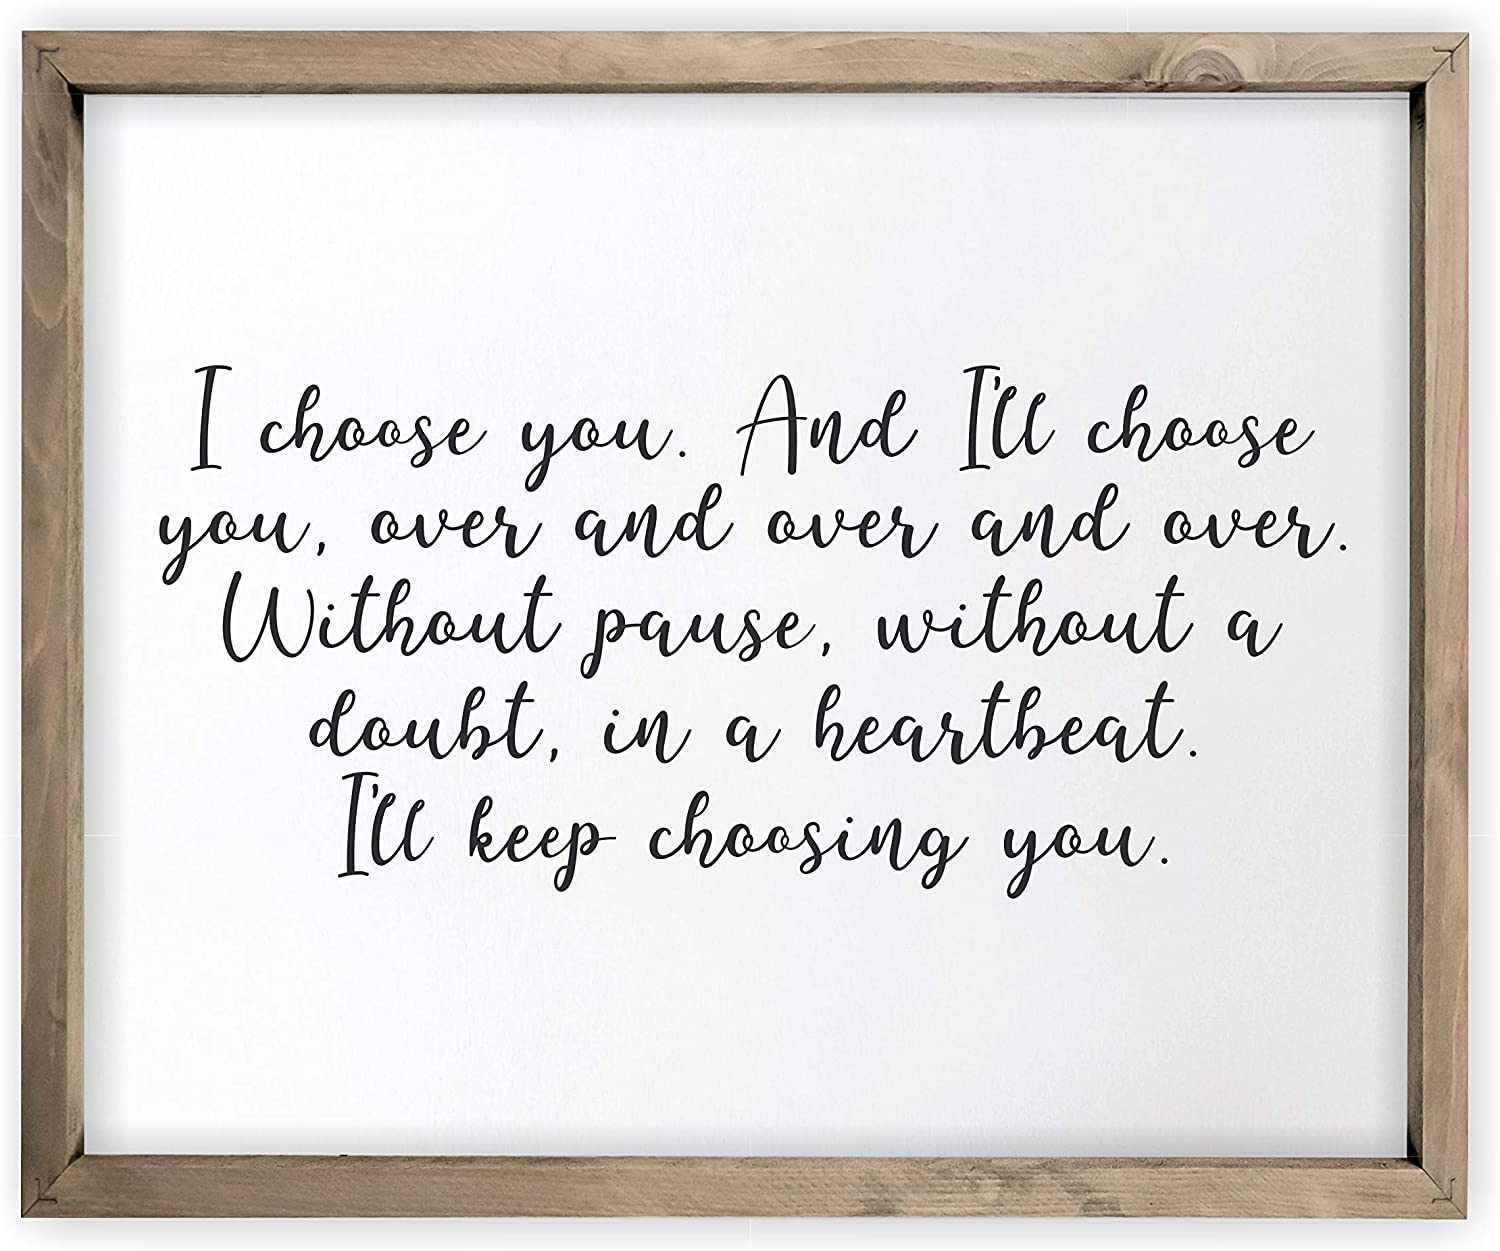 I Choose You Framed Rustic Wood Farmhouse Wall Sign 12x15